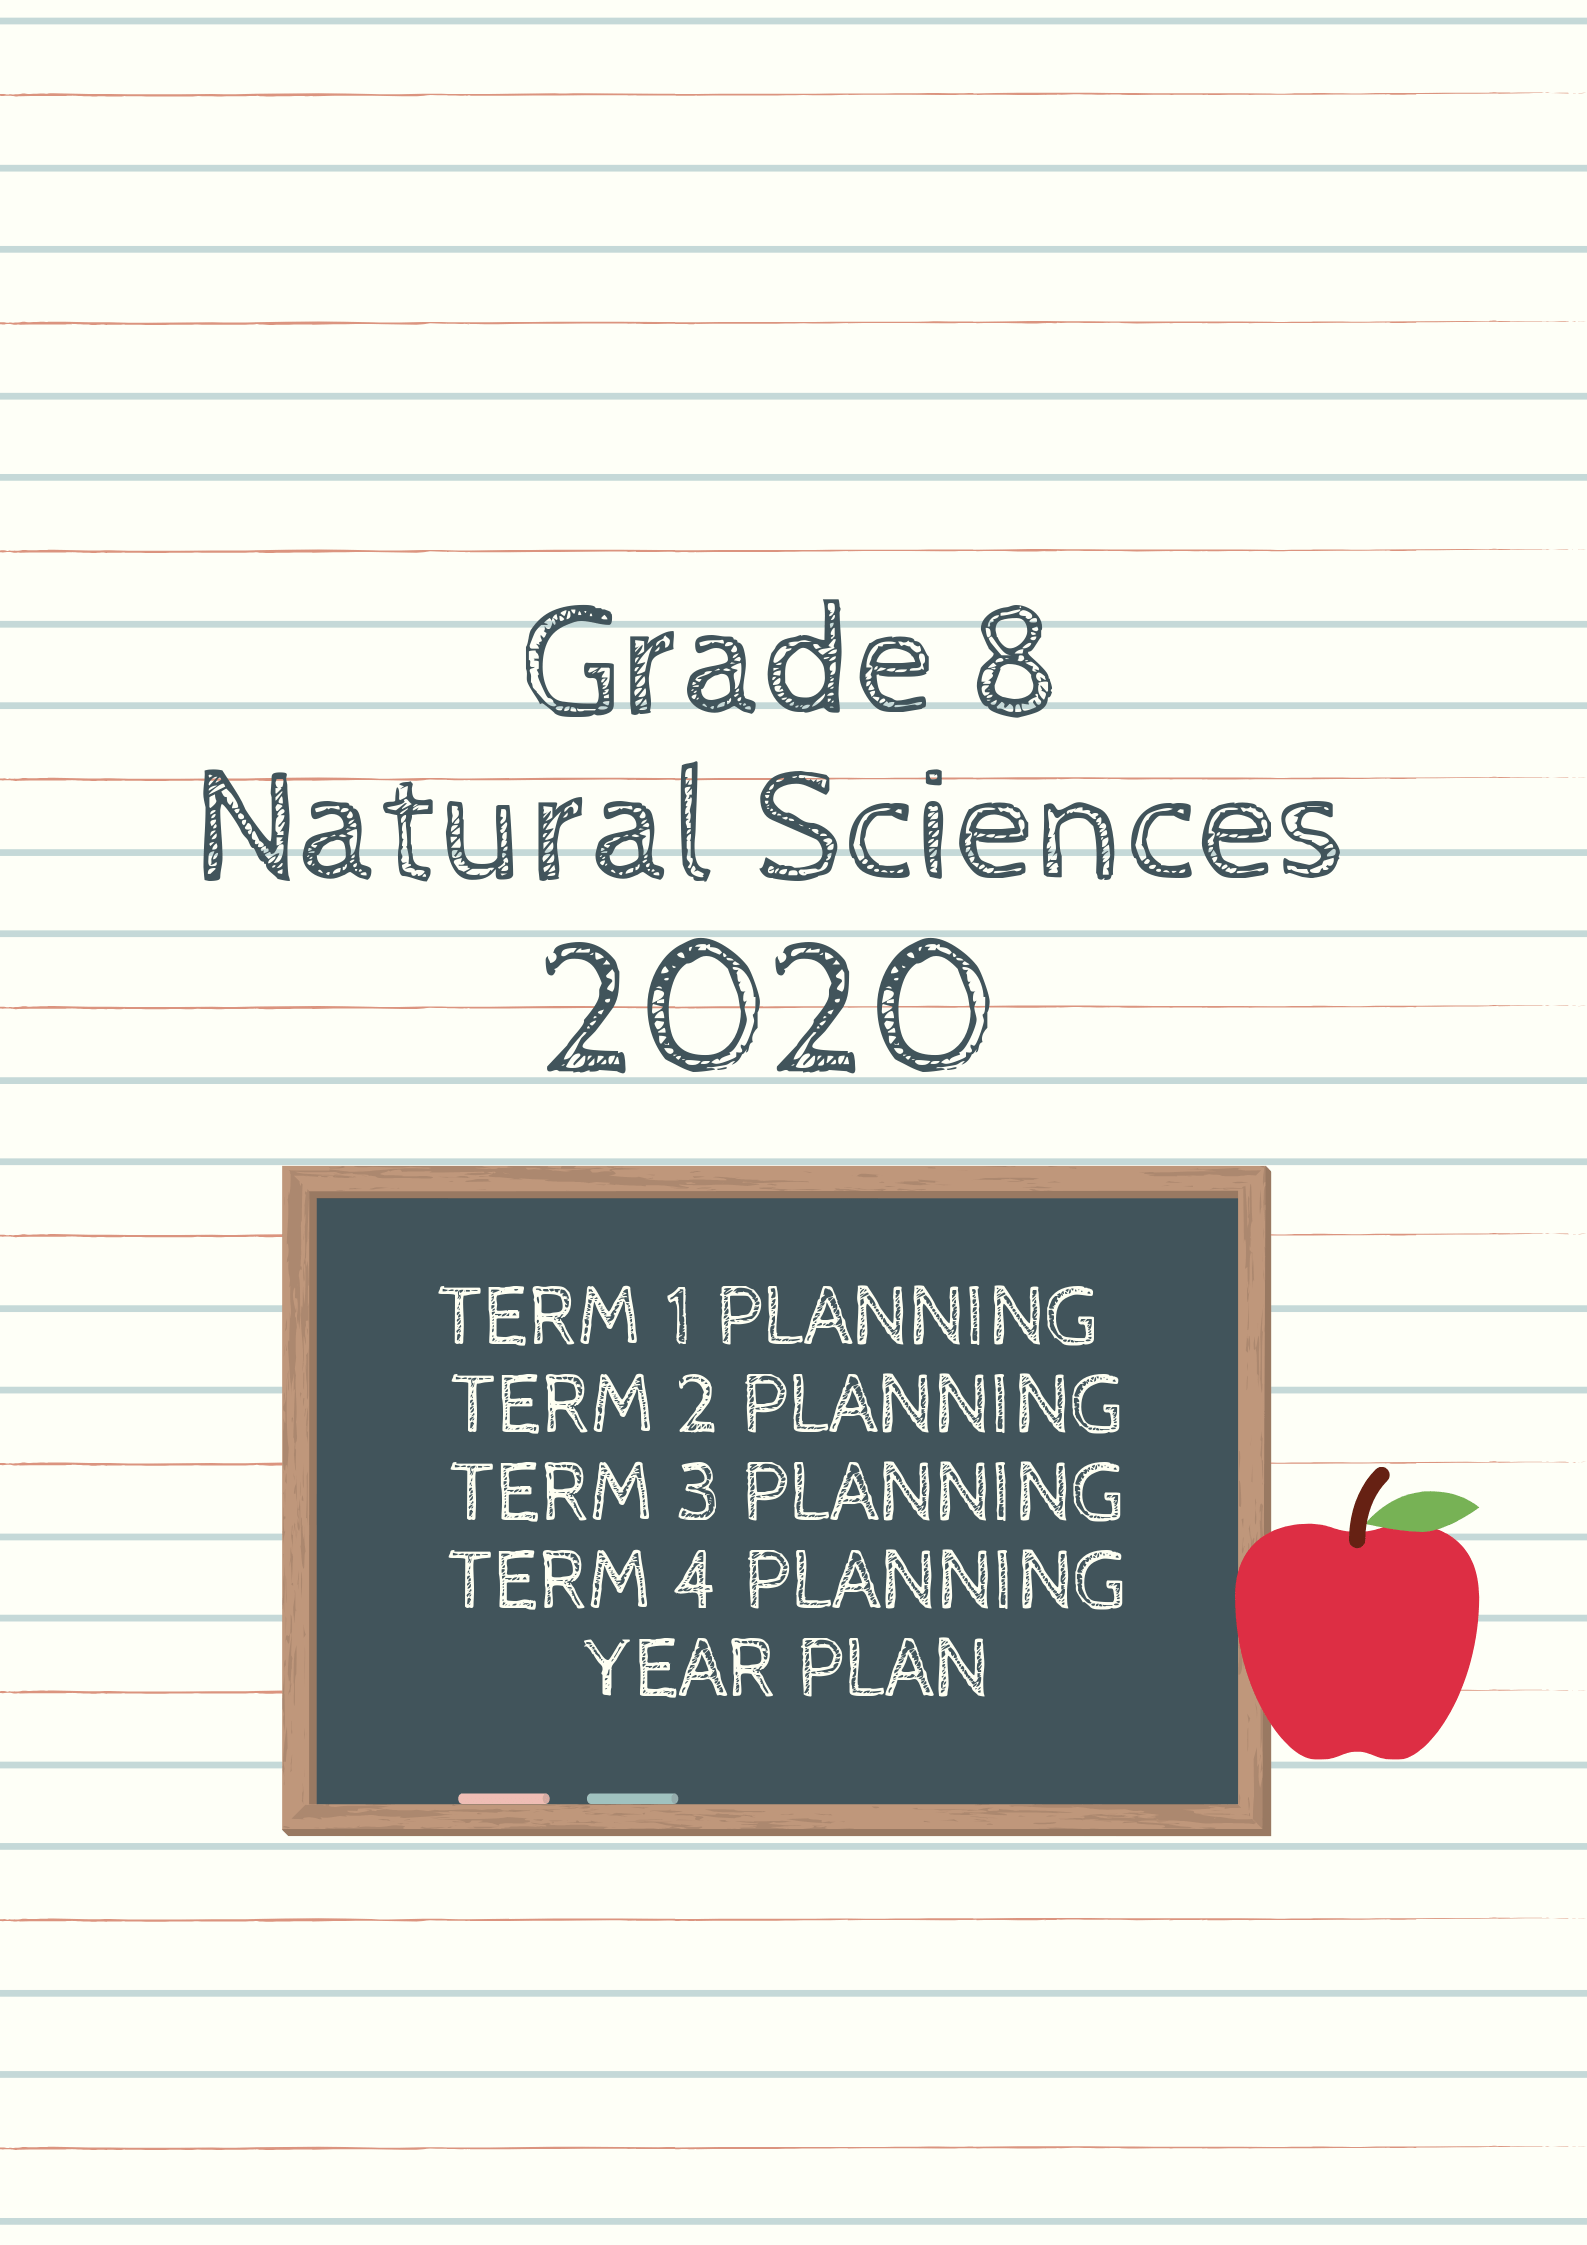 hight resolution of Grade 8 Natural Sciences Planning 2020 (term and year plan) - Teacha!